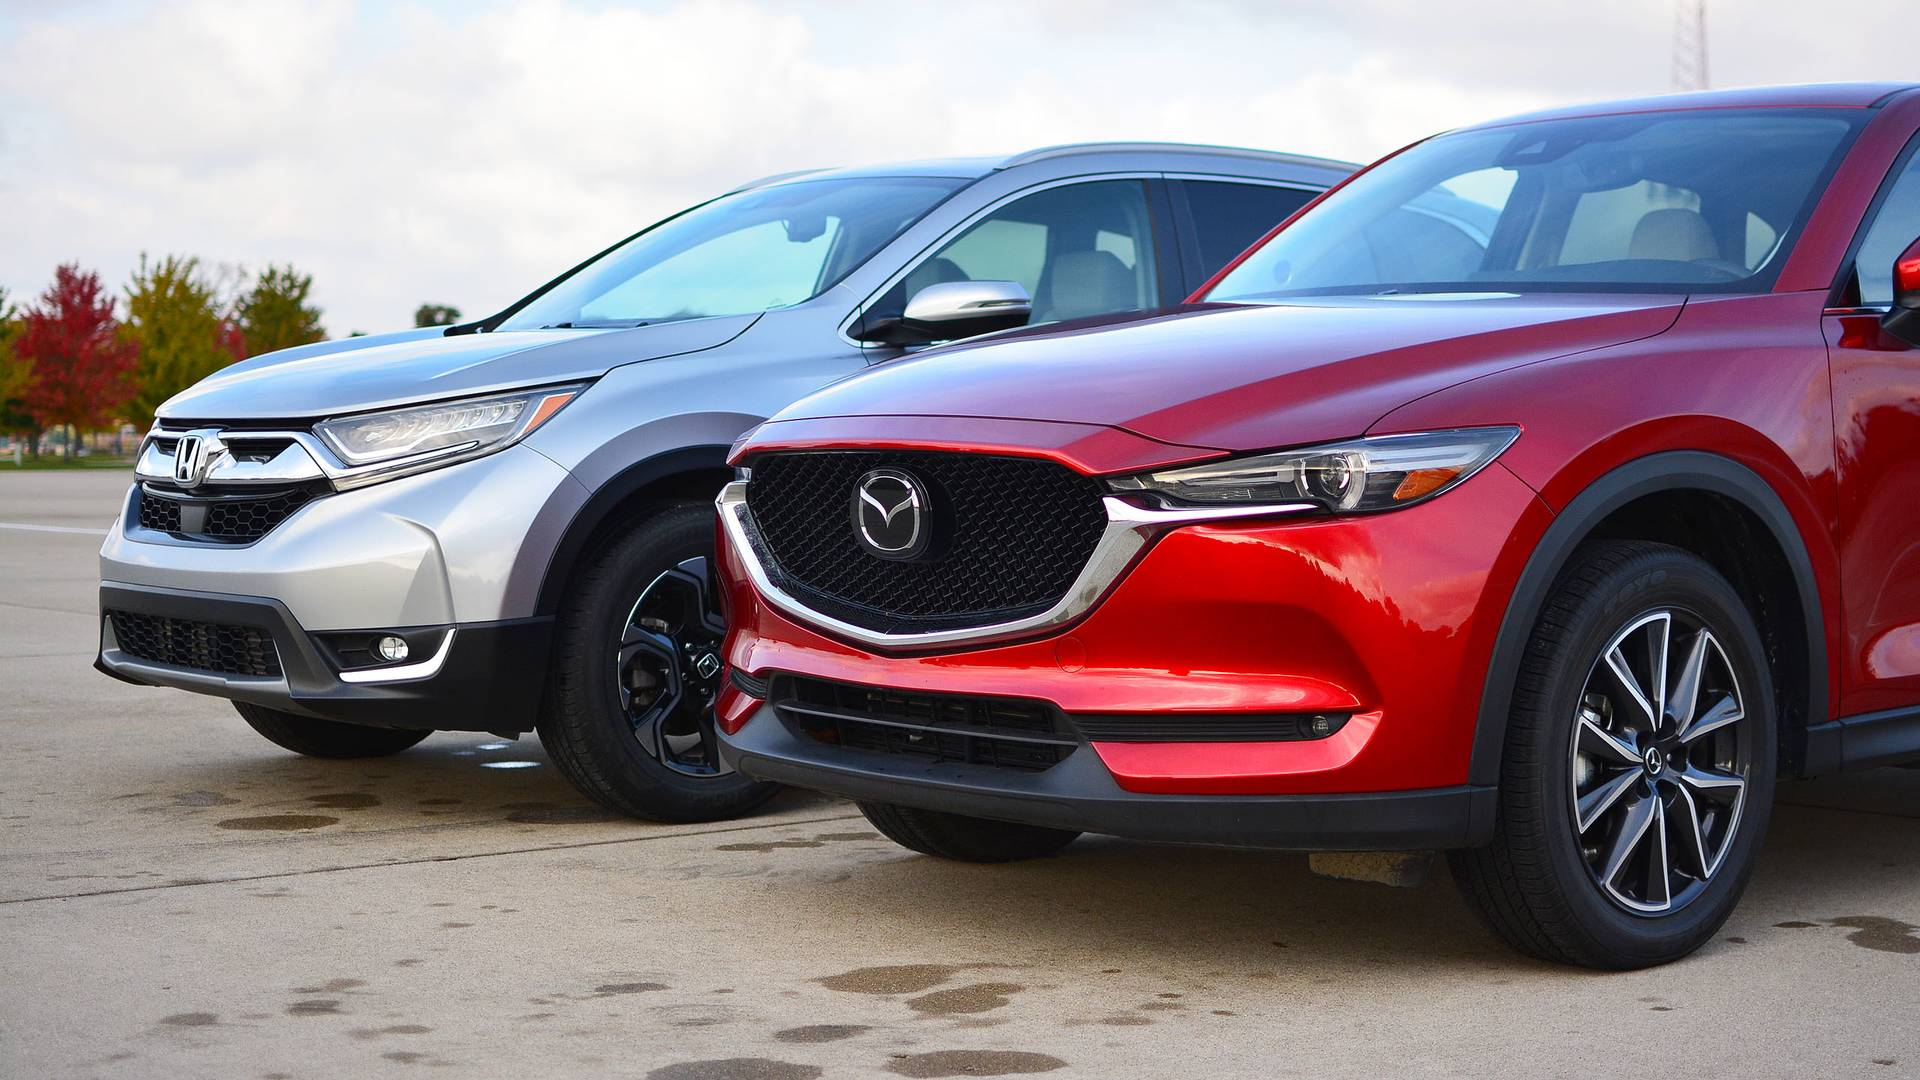 rating suv mazda trend models reviews touring en and angular motor cx fwd canada front cars